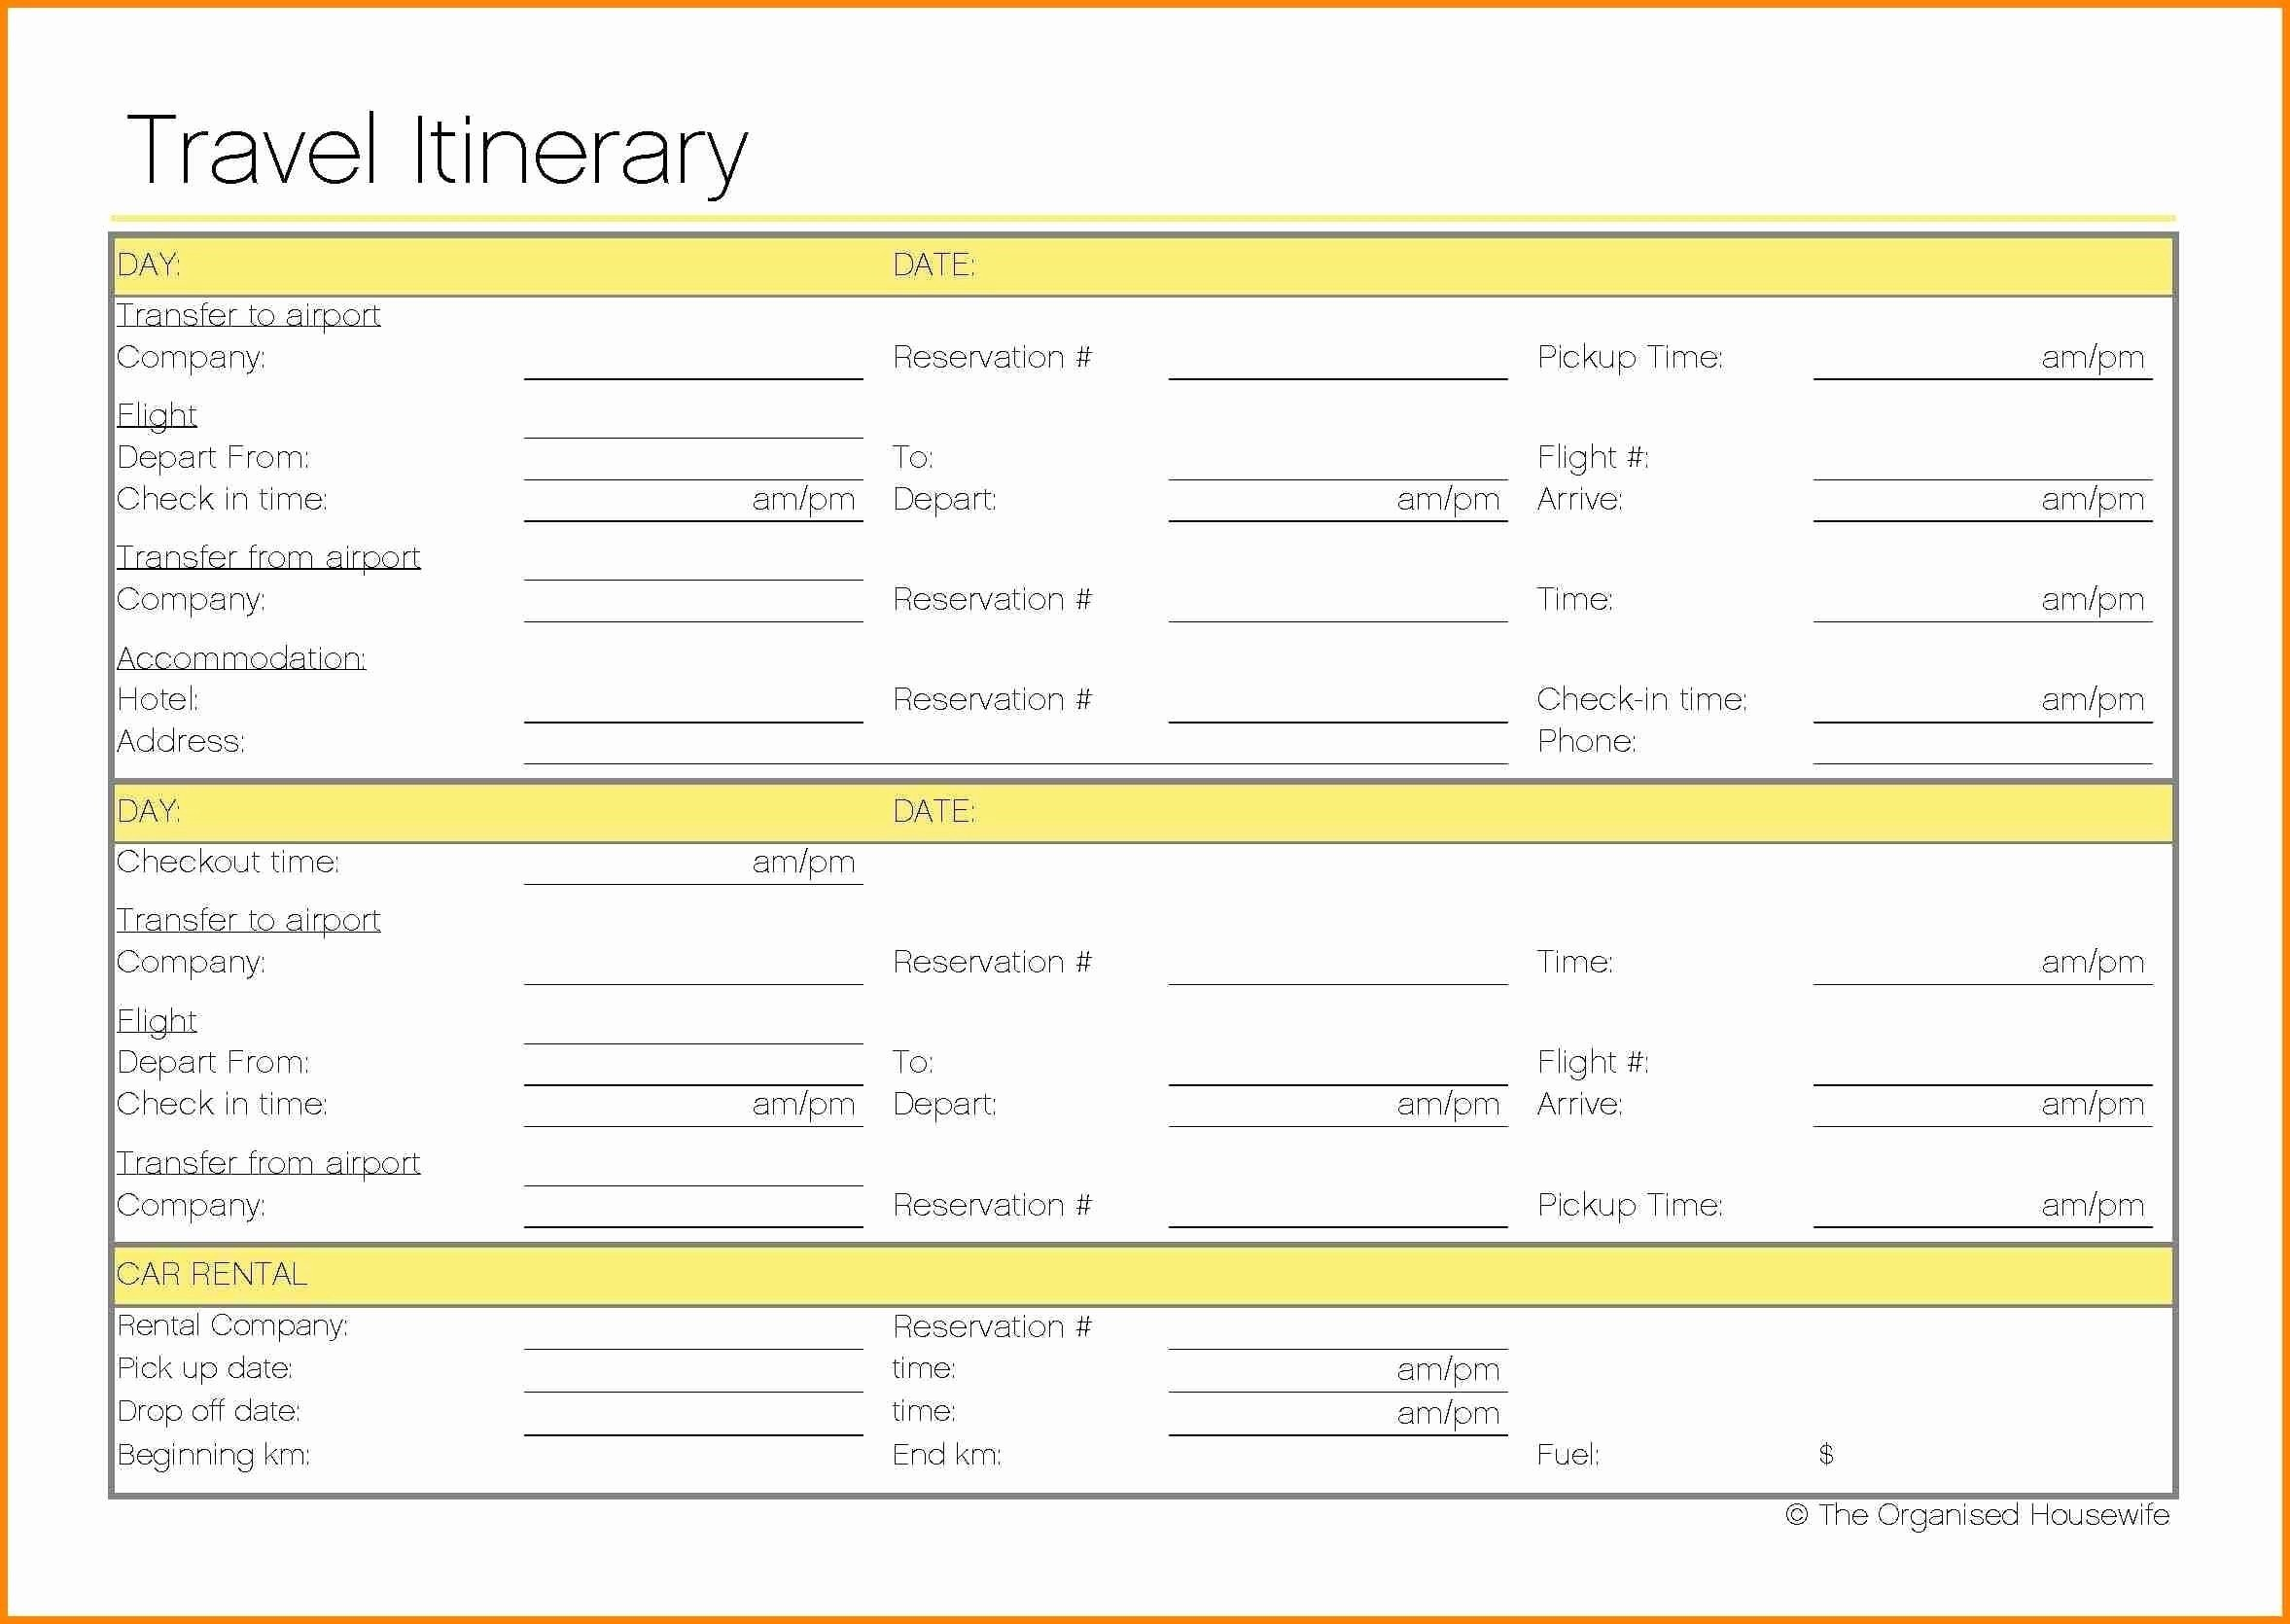 Travel Itinerary Template Google Docs Travel Itinerary Template Google Docs